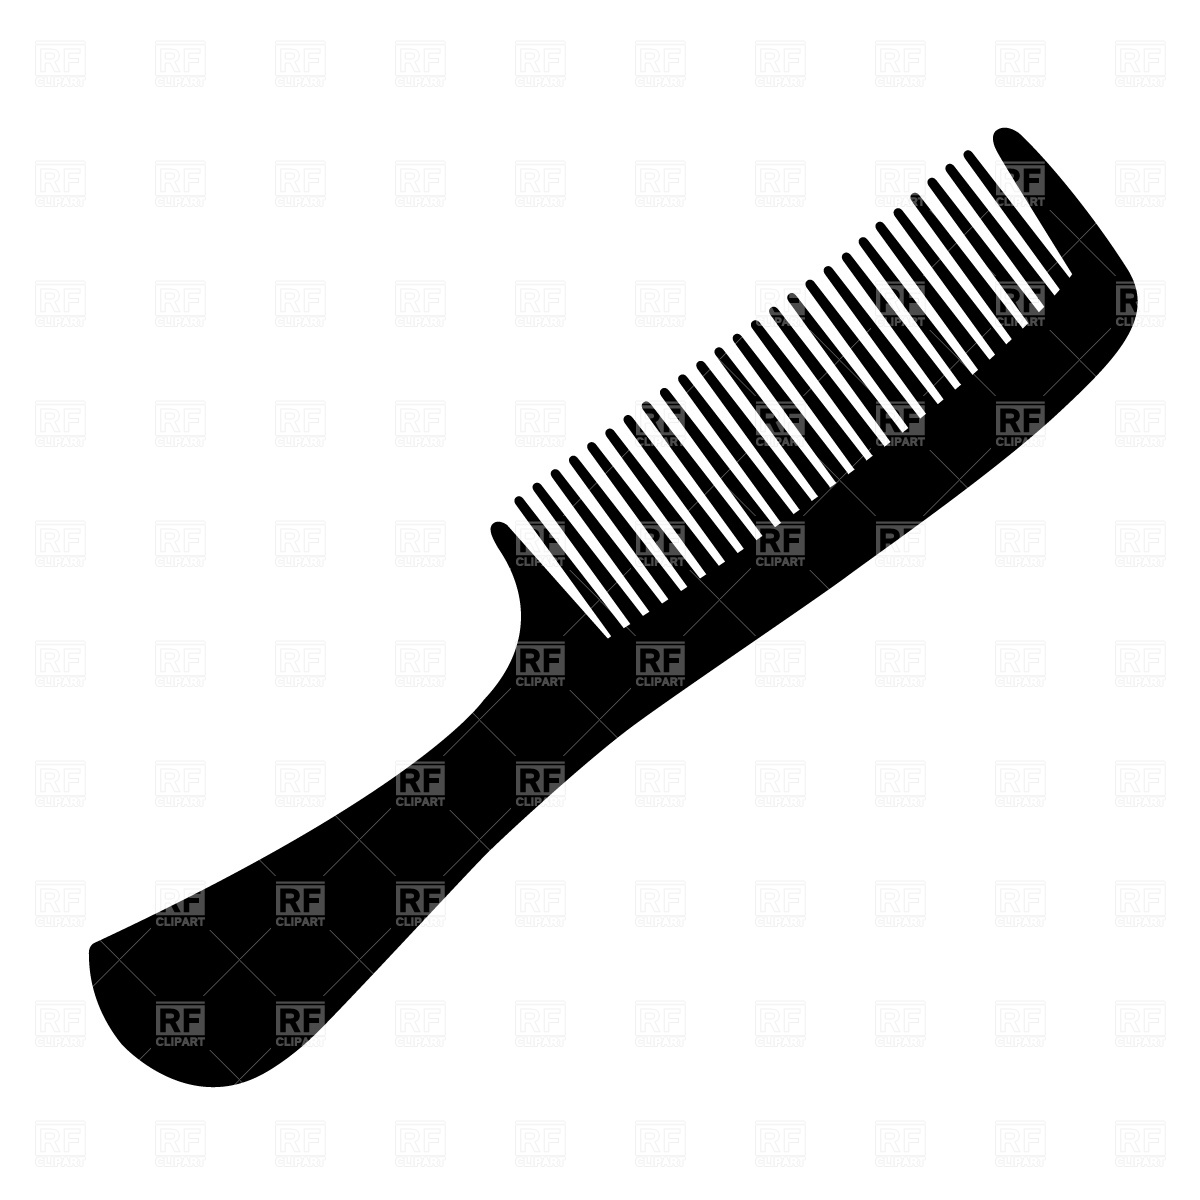 Brush clipart combs. Hair silhouette at getdrawings